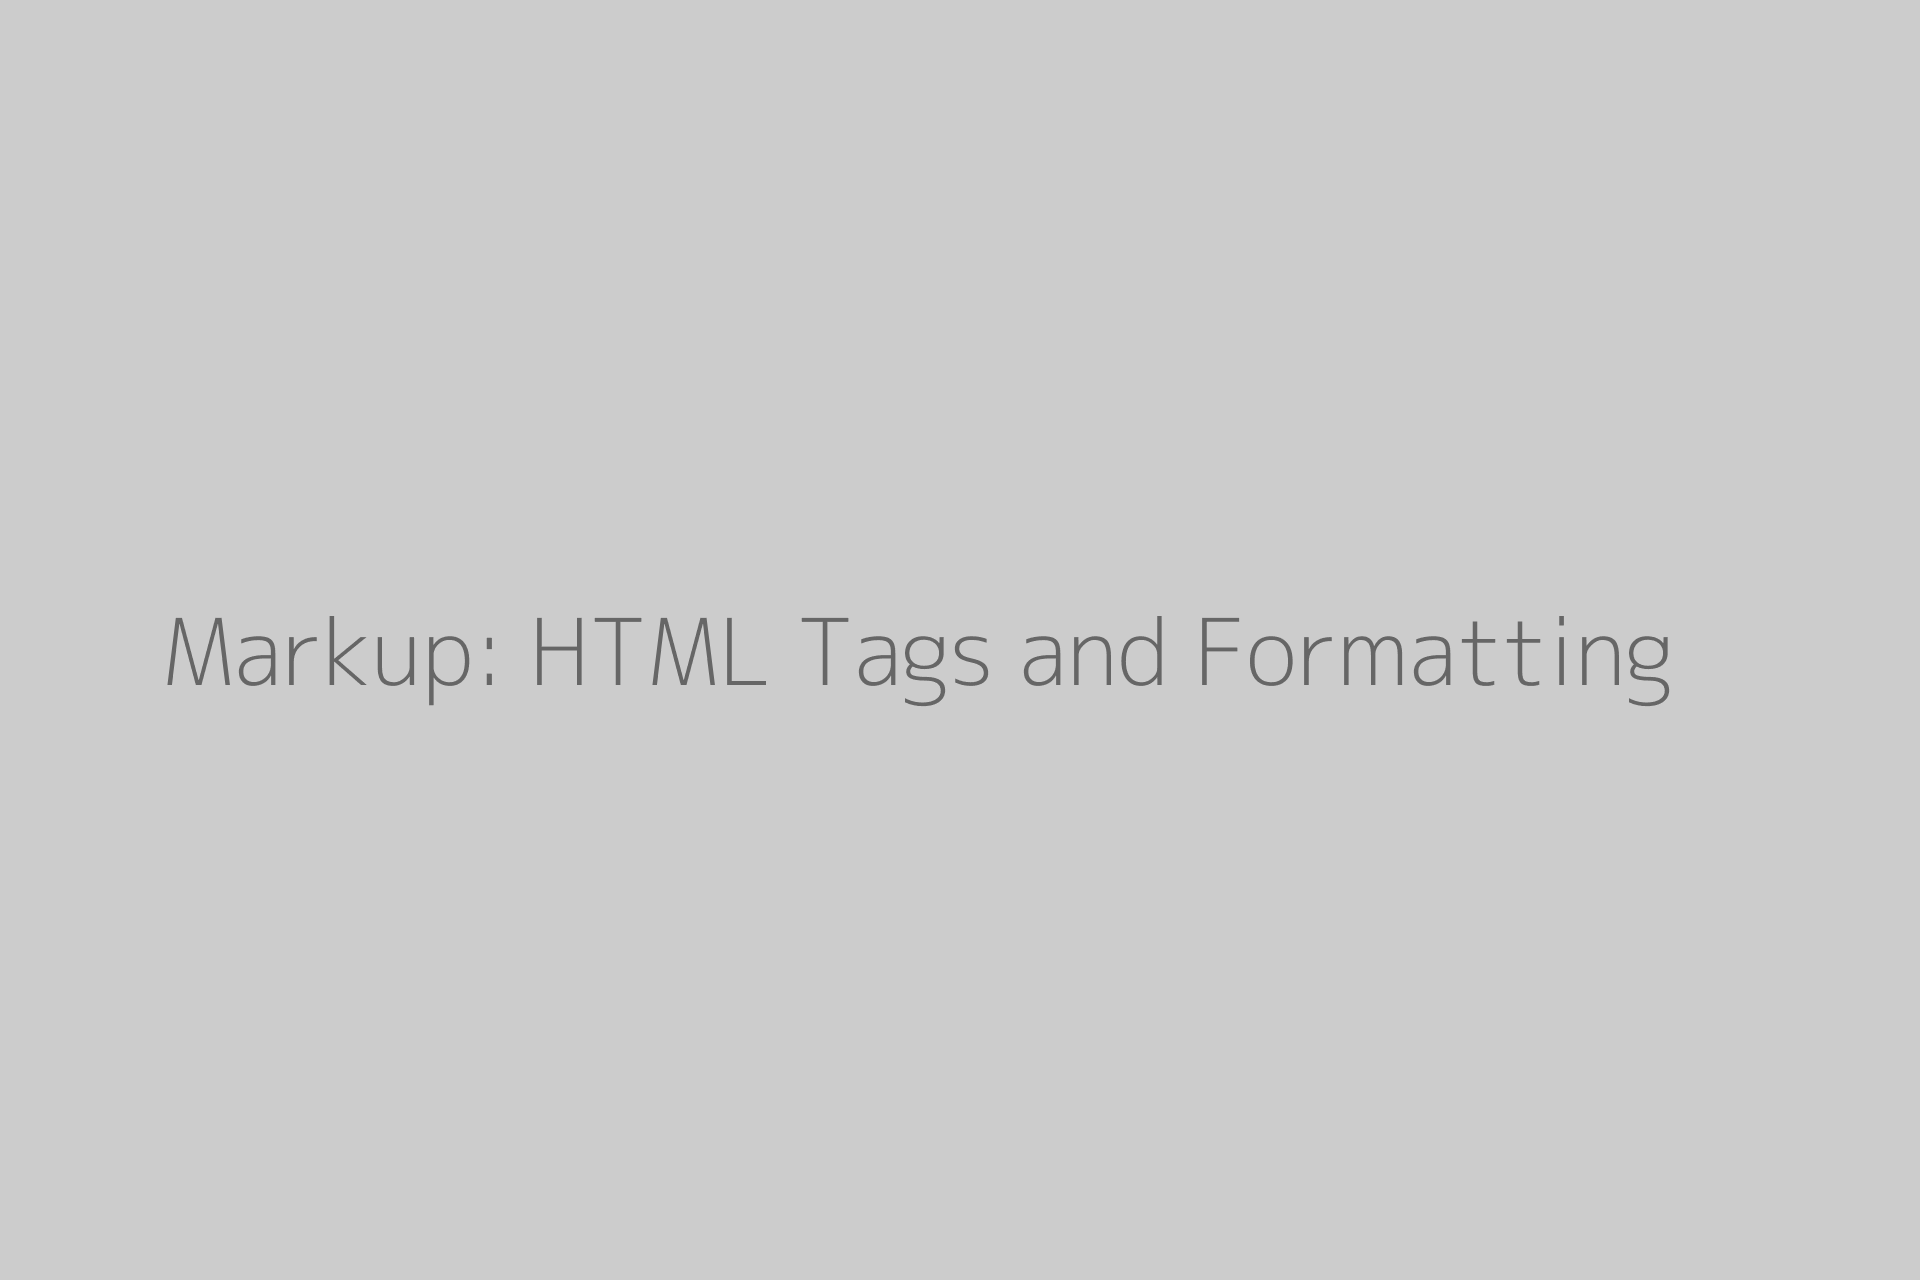 Markup: HTML Tags and Formatting